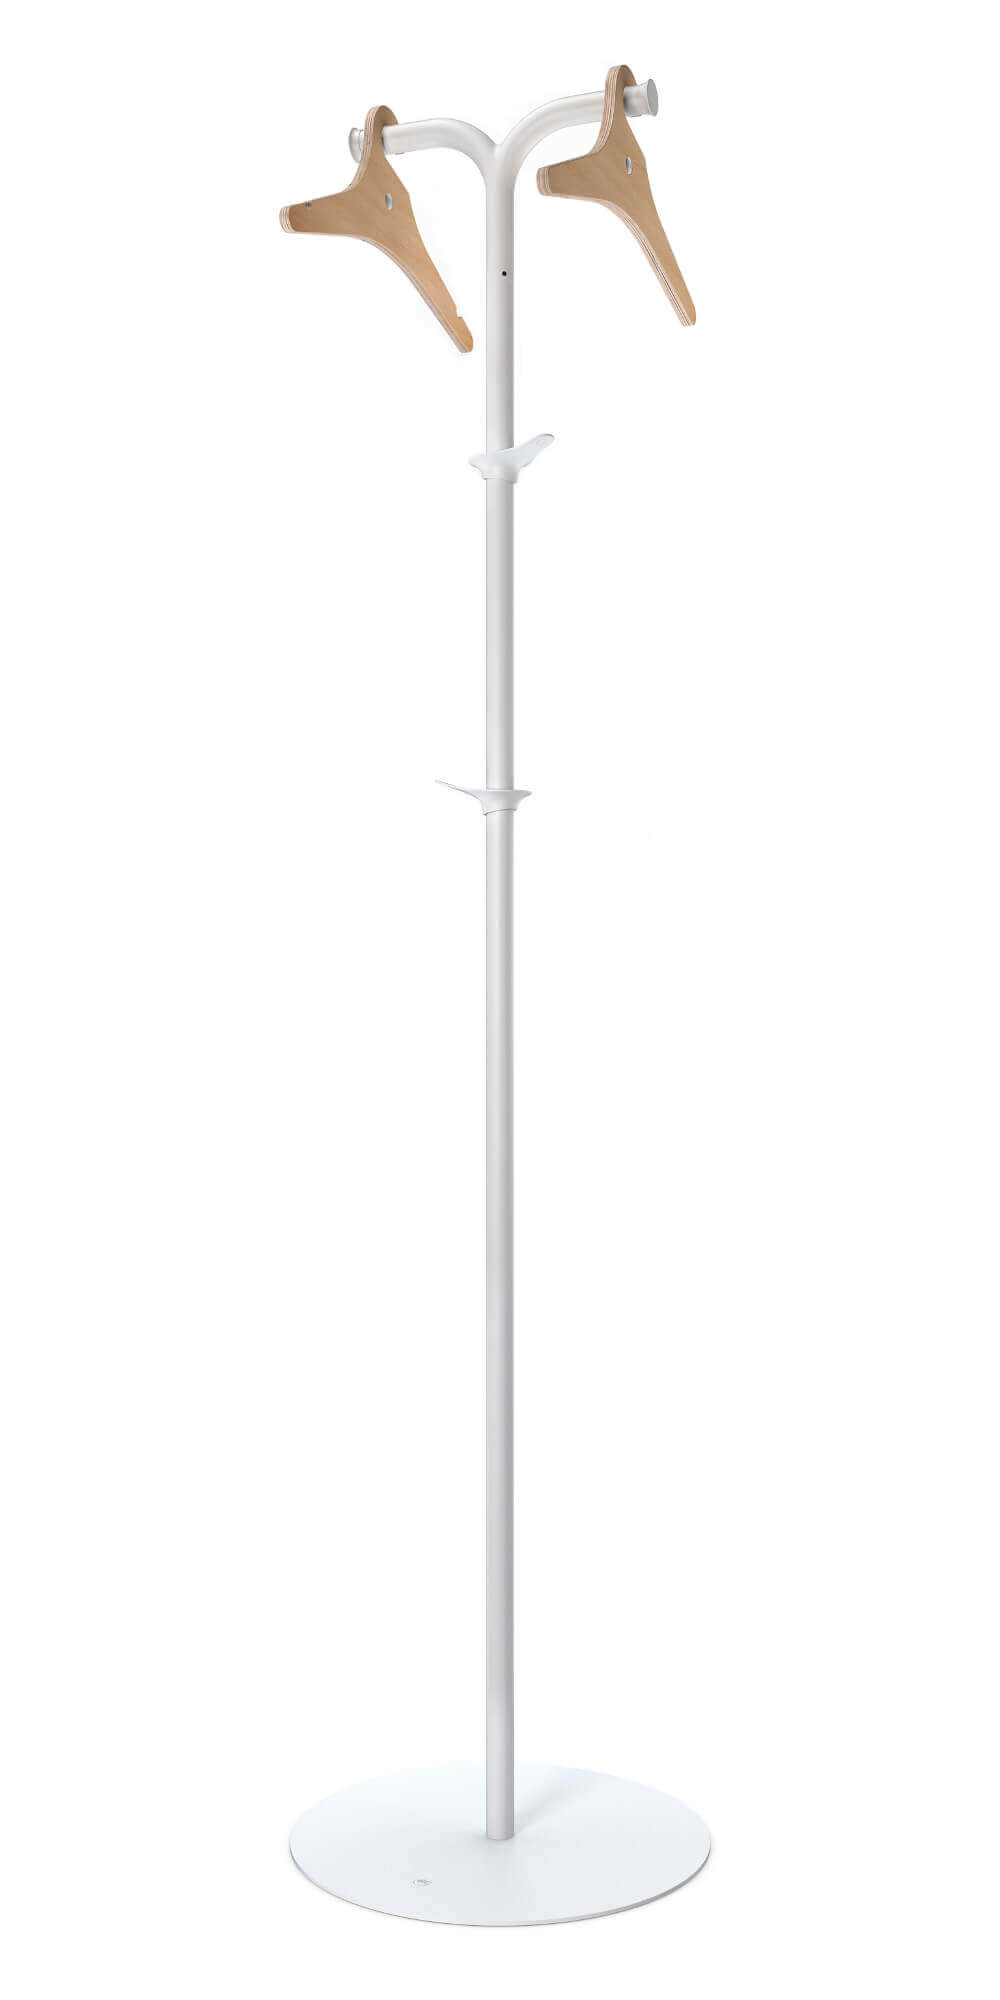 RiZZ Free standing coat stand palm white Teun Fleskens